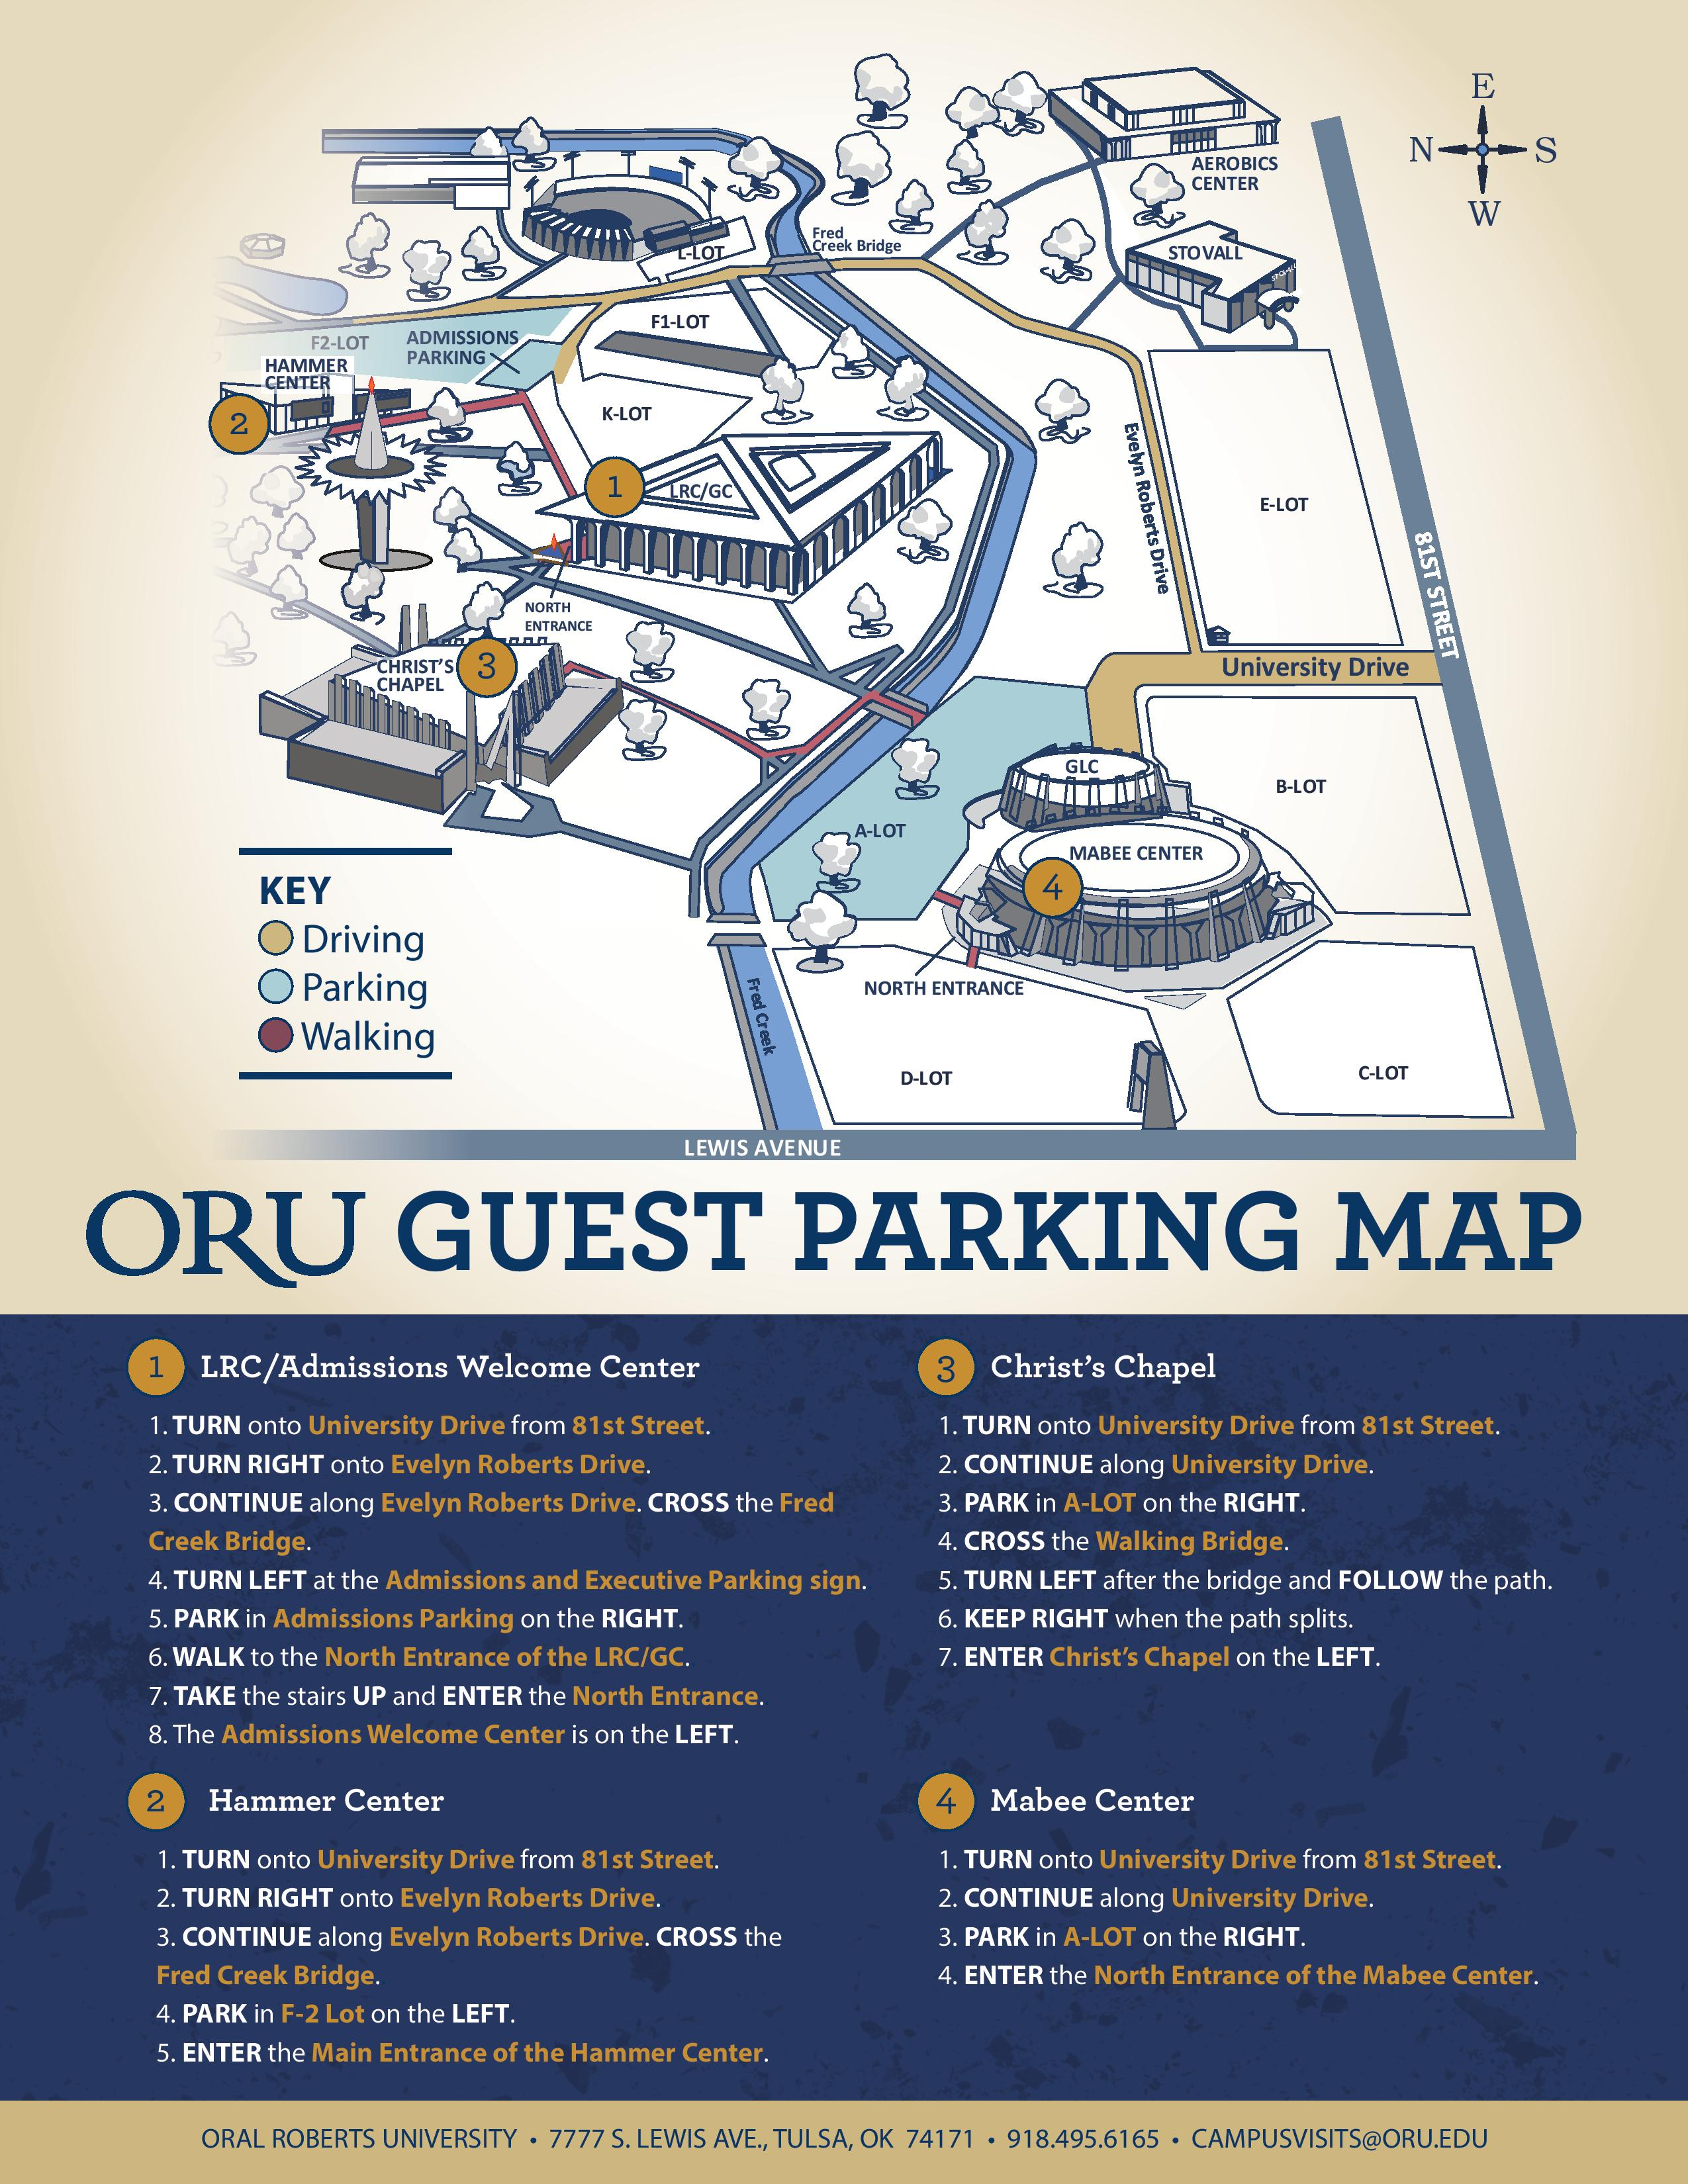 ORU Guest Parking Map